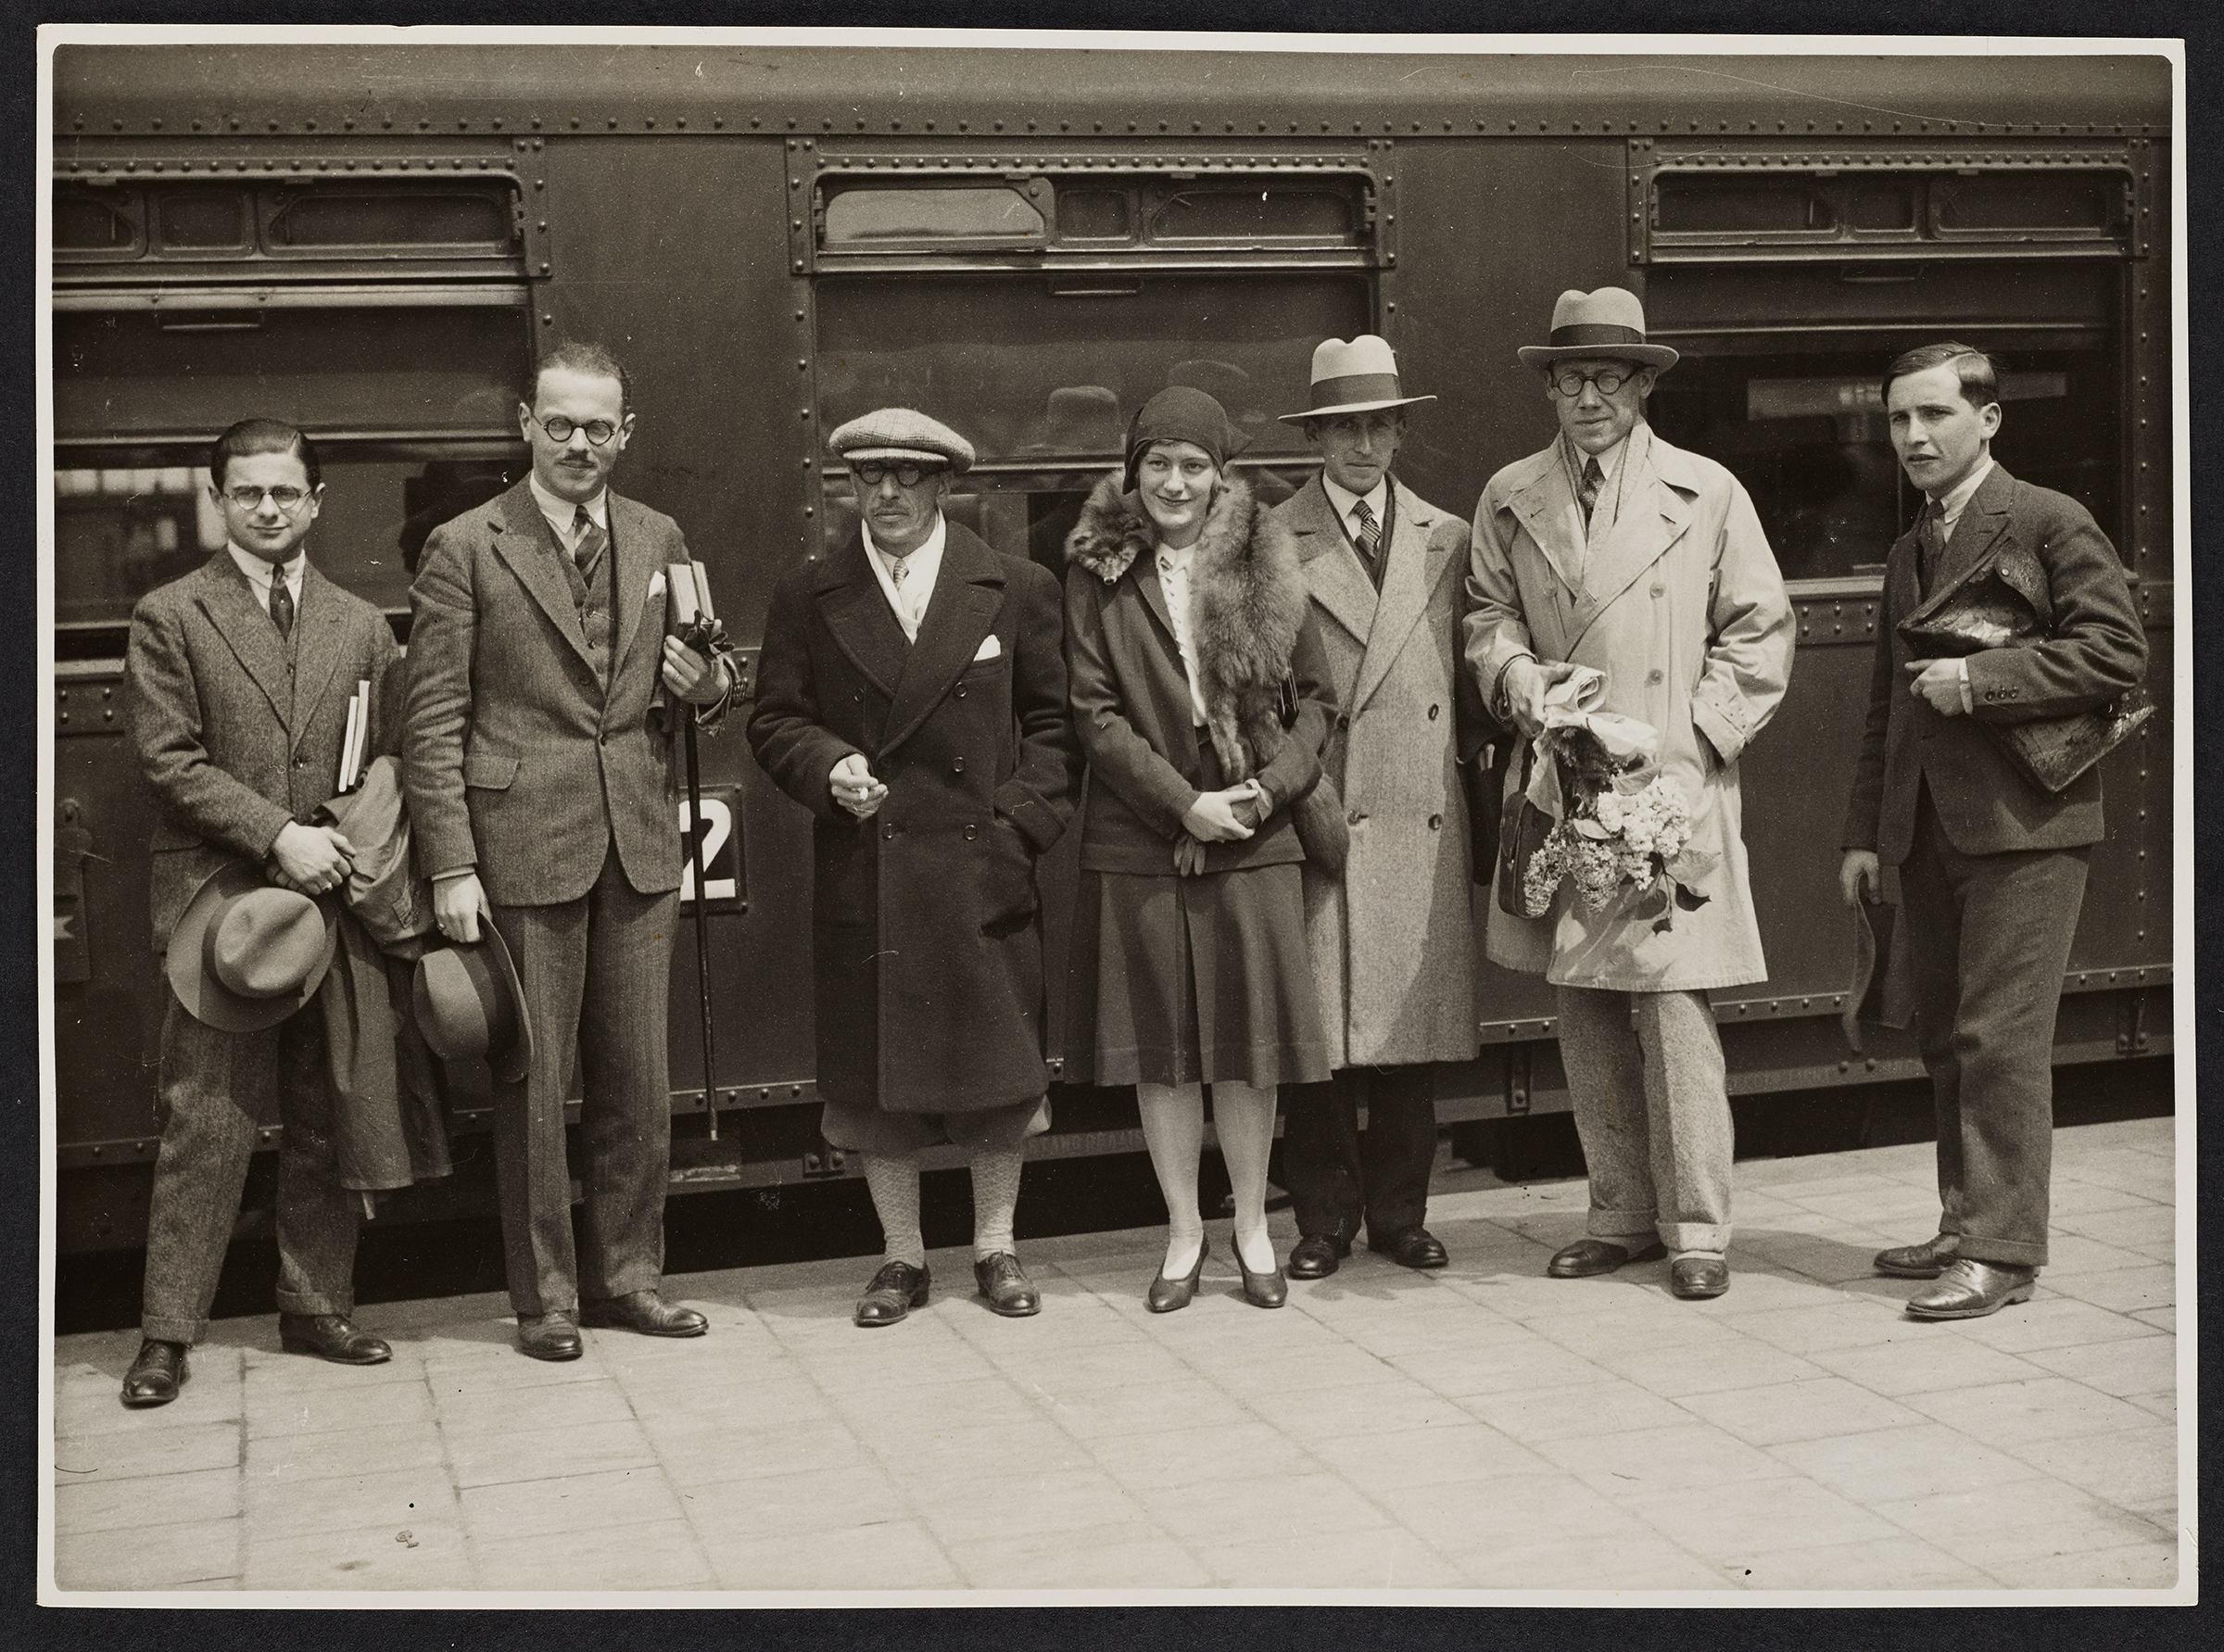 Group picture at the Amsterdam Central Station with Igor Stravinsky (third from the left) and son (second from the right). Taken on May 23, 1930. © Paul Sacher Stiftung